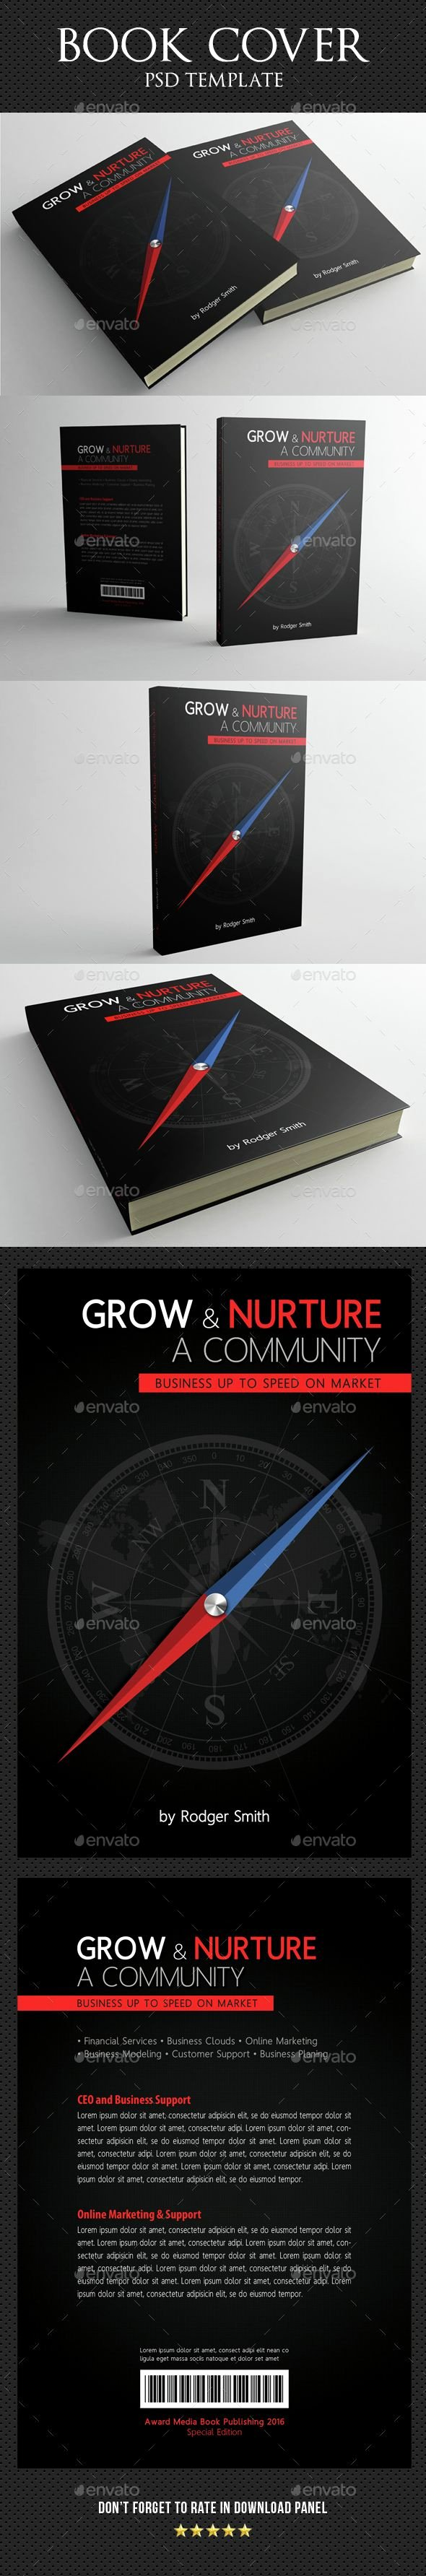 Photoshop Book Cover Template Beautiful 25 Best Ideas About Book Cover Design Template On